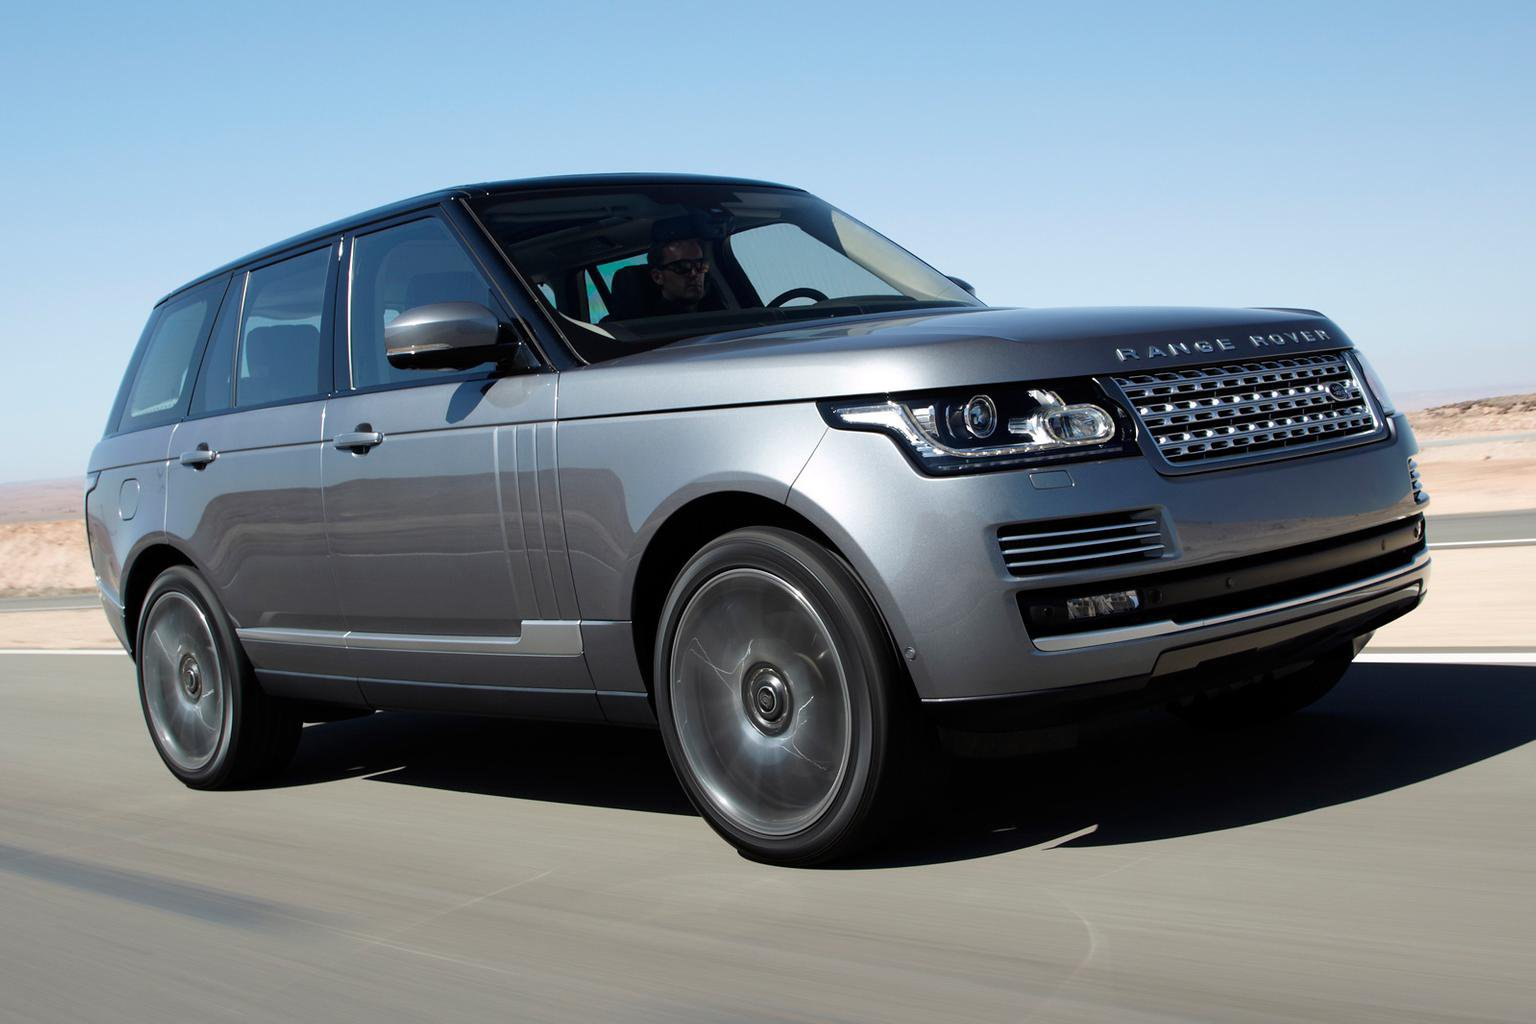 Range Rover reveals upgrades to Range Rover and Range Rover Sport models